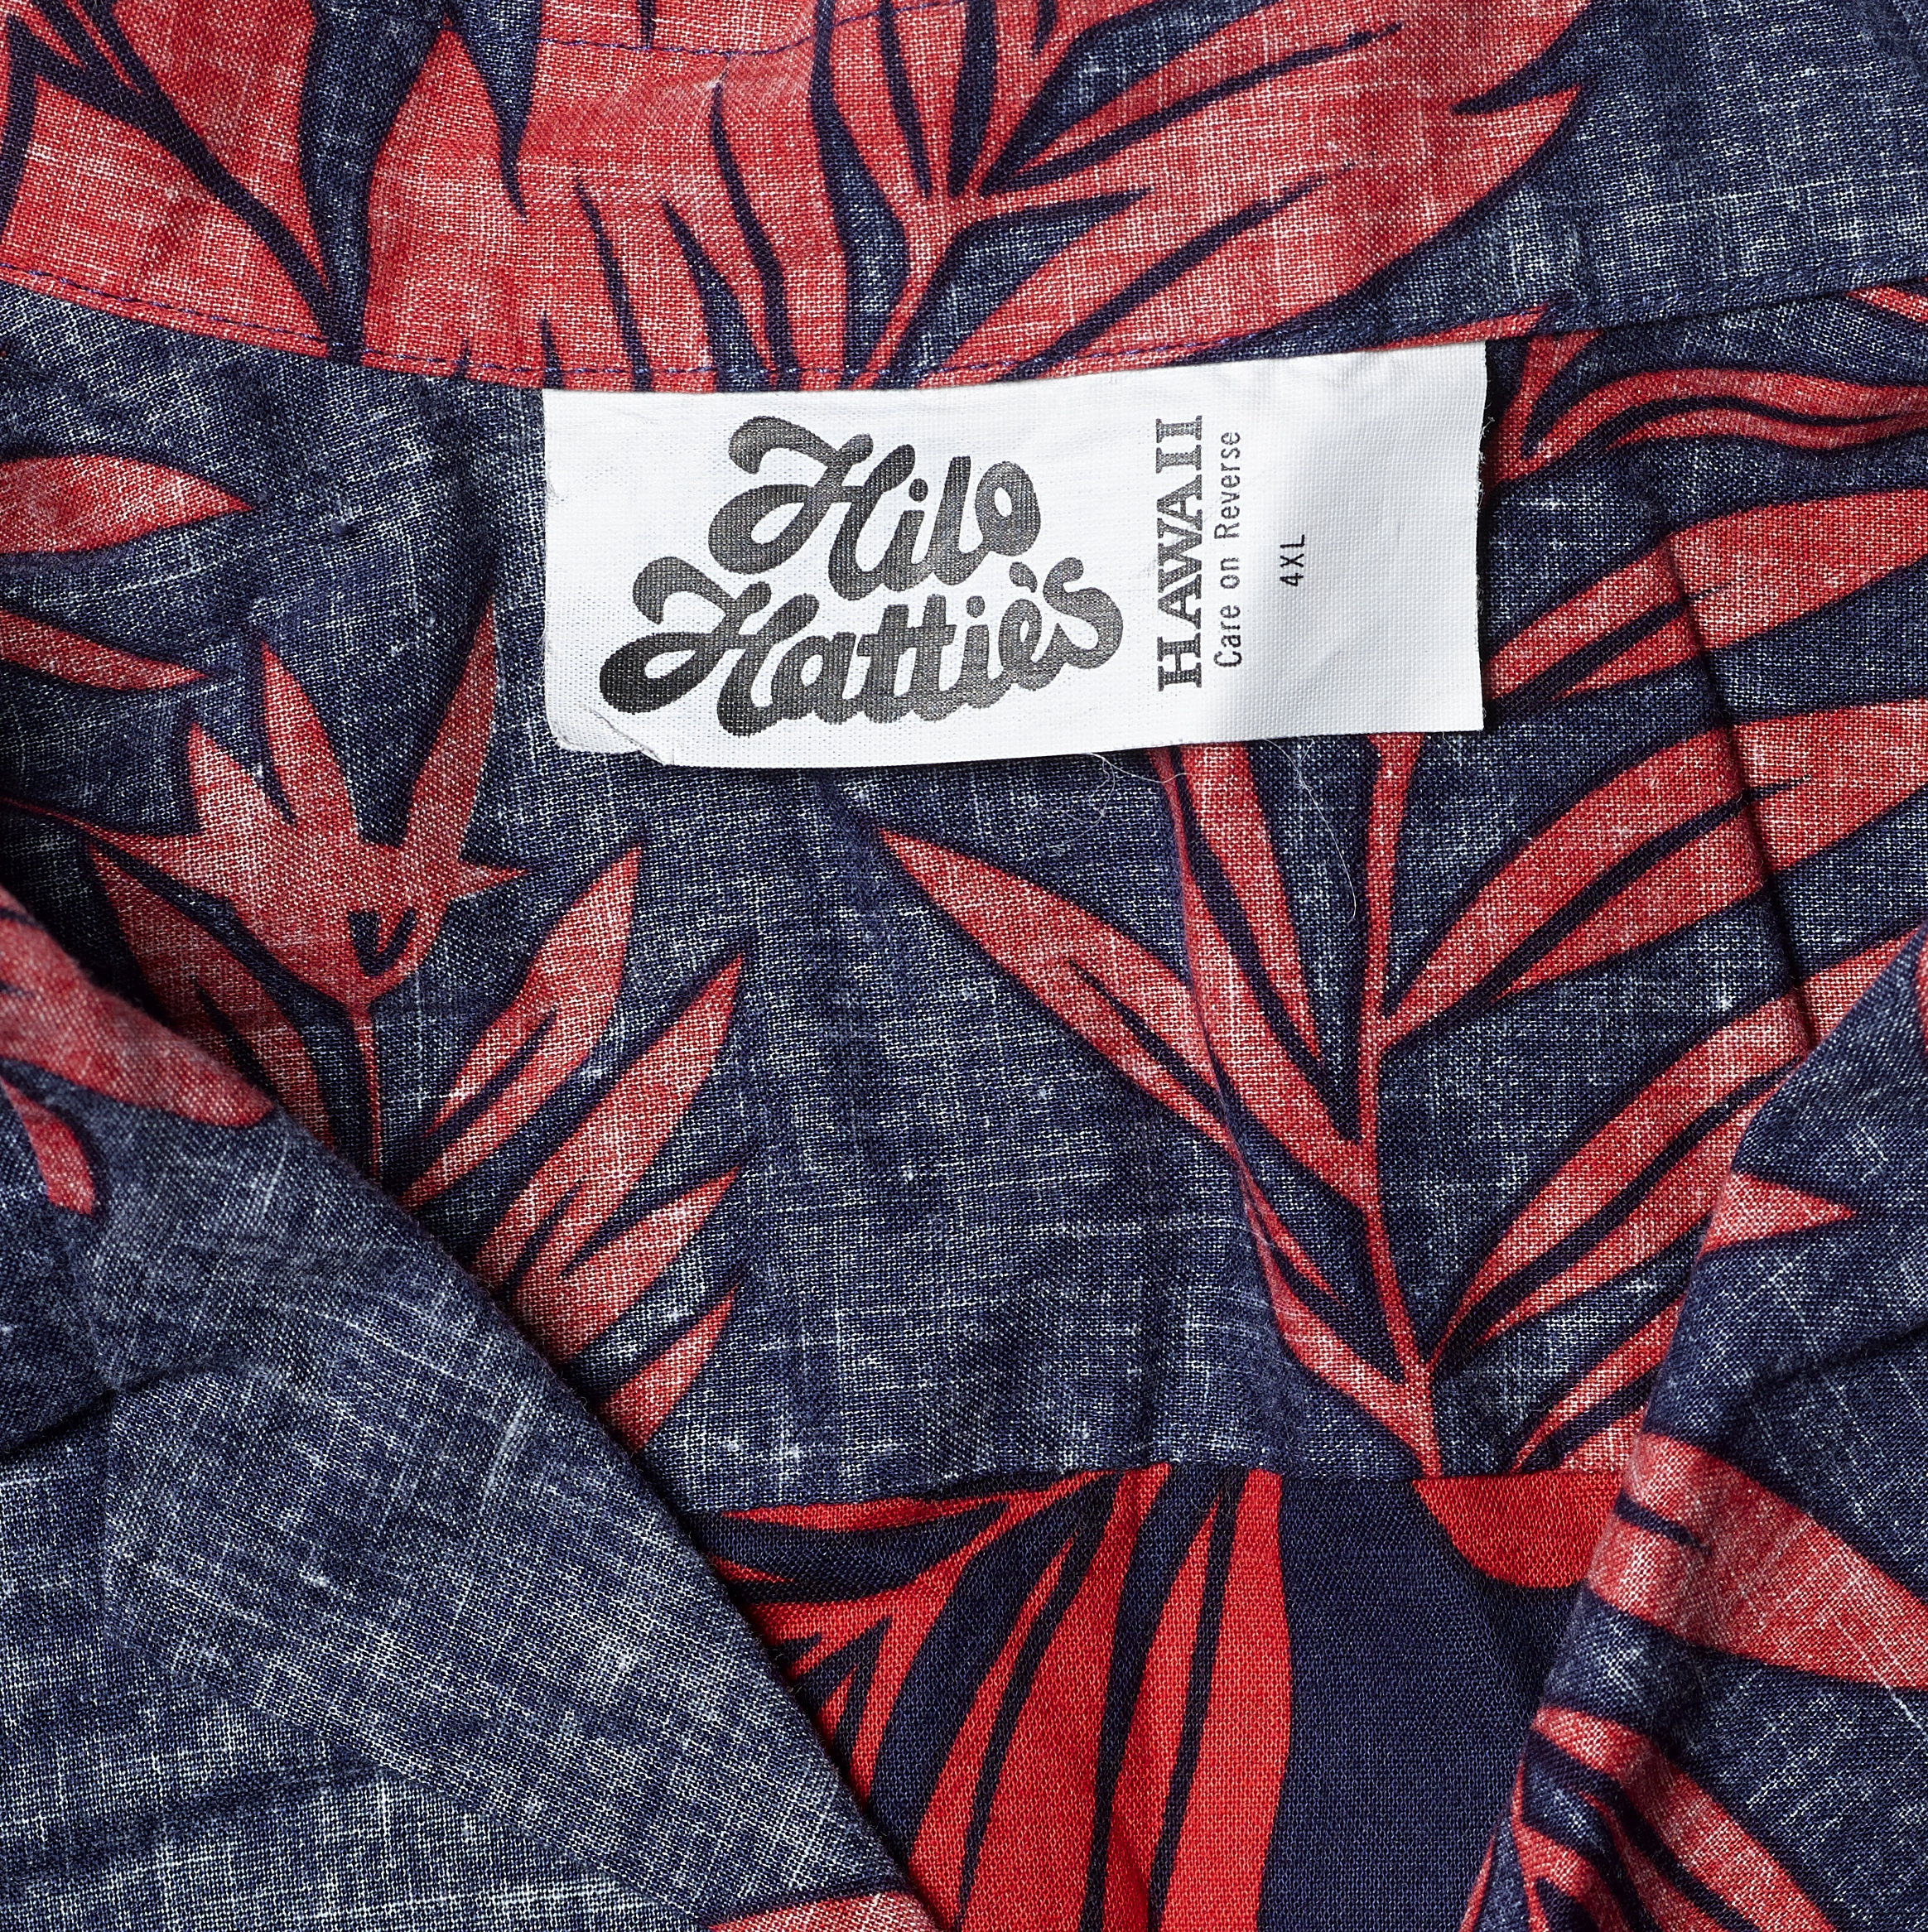 Lot 359 - A HAWAIIAN SHIRT OWNED AND WORN BY JERRY GARCIA circa 1990